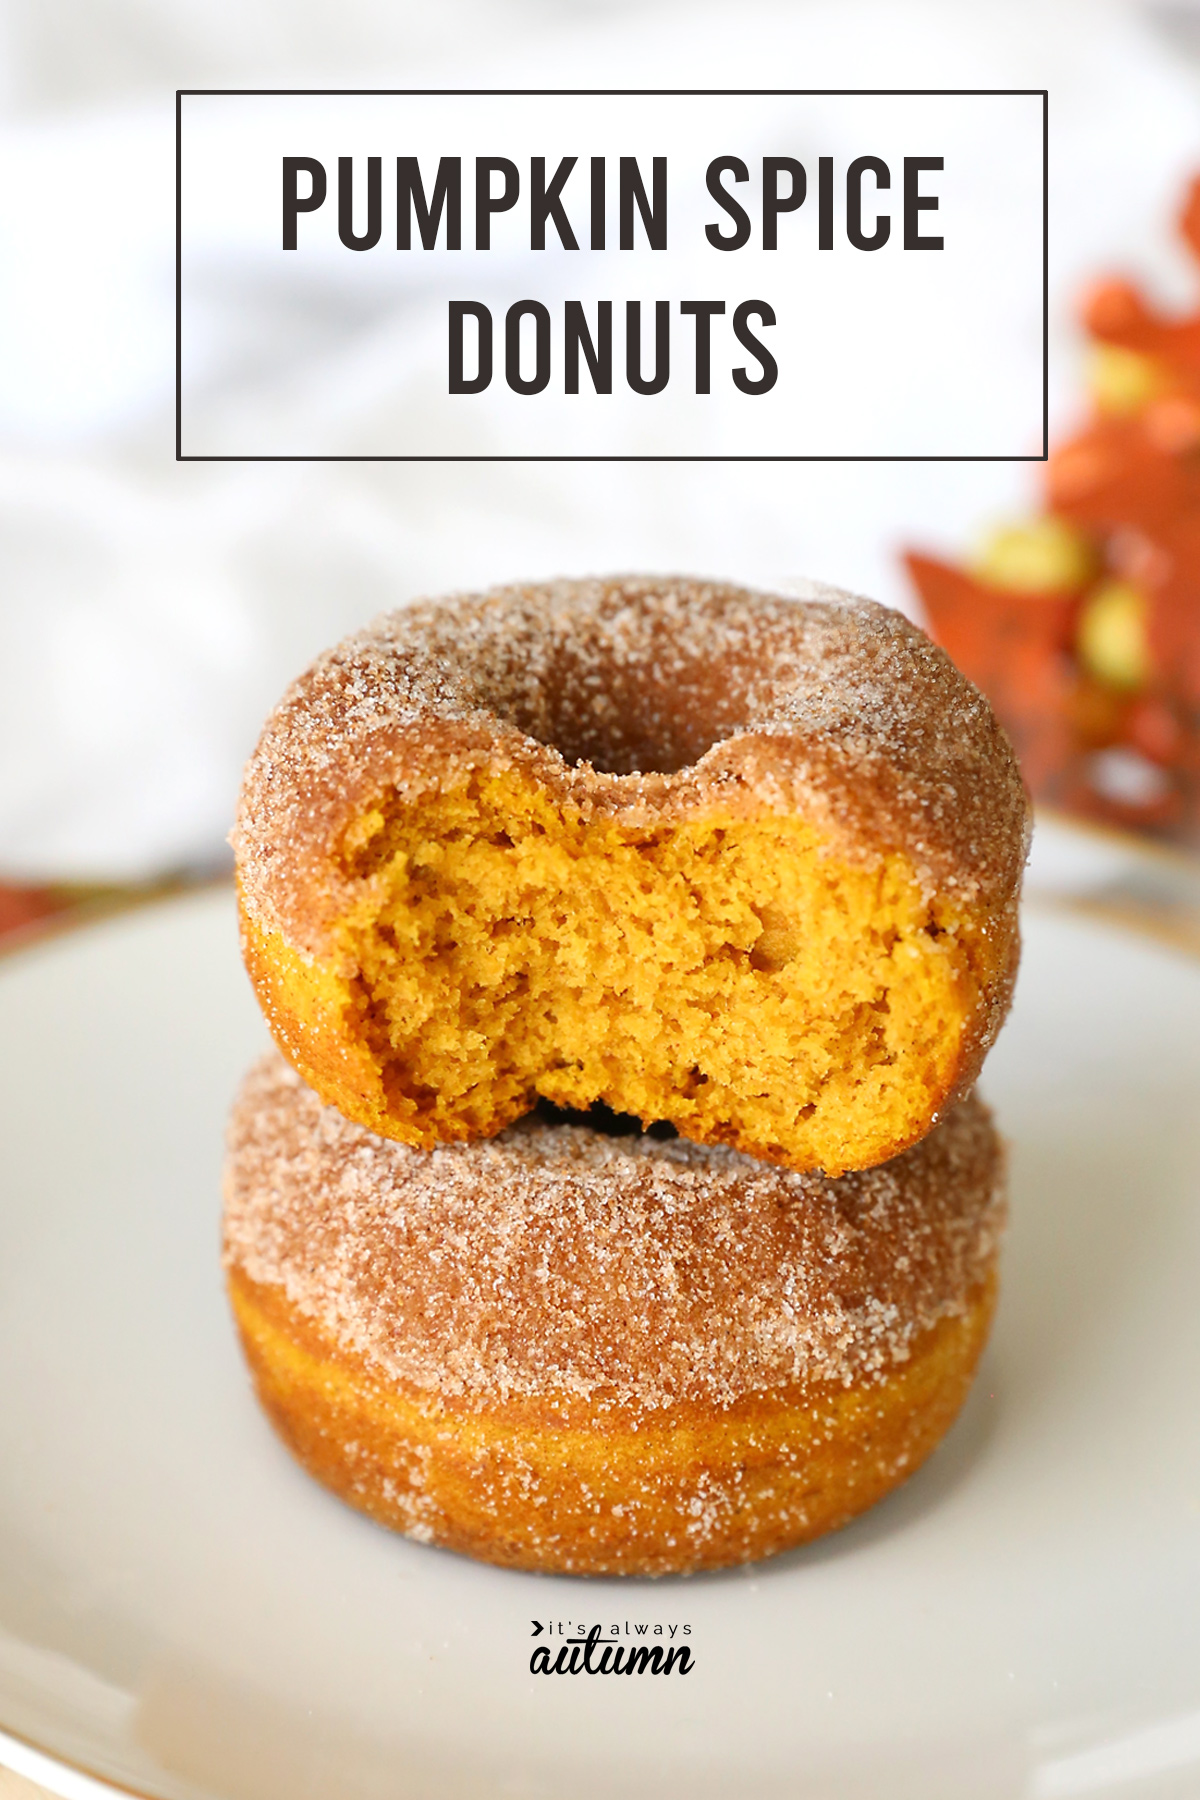 Baked pumpkin spice donuts are the perfect fall treat!